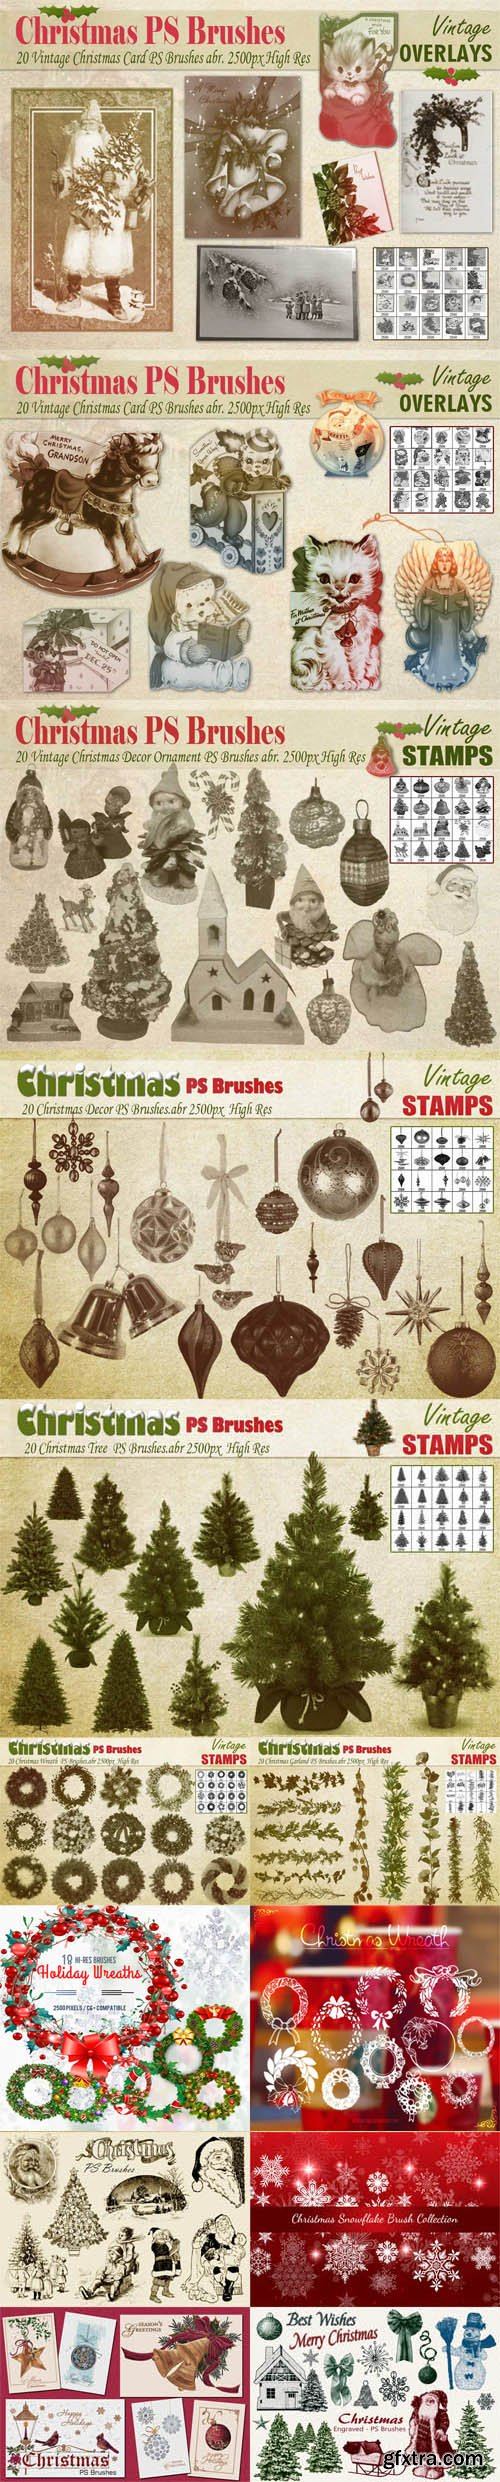 Christmas & New Year Brushes for Photoshop Pack 1